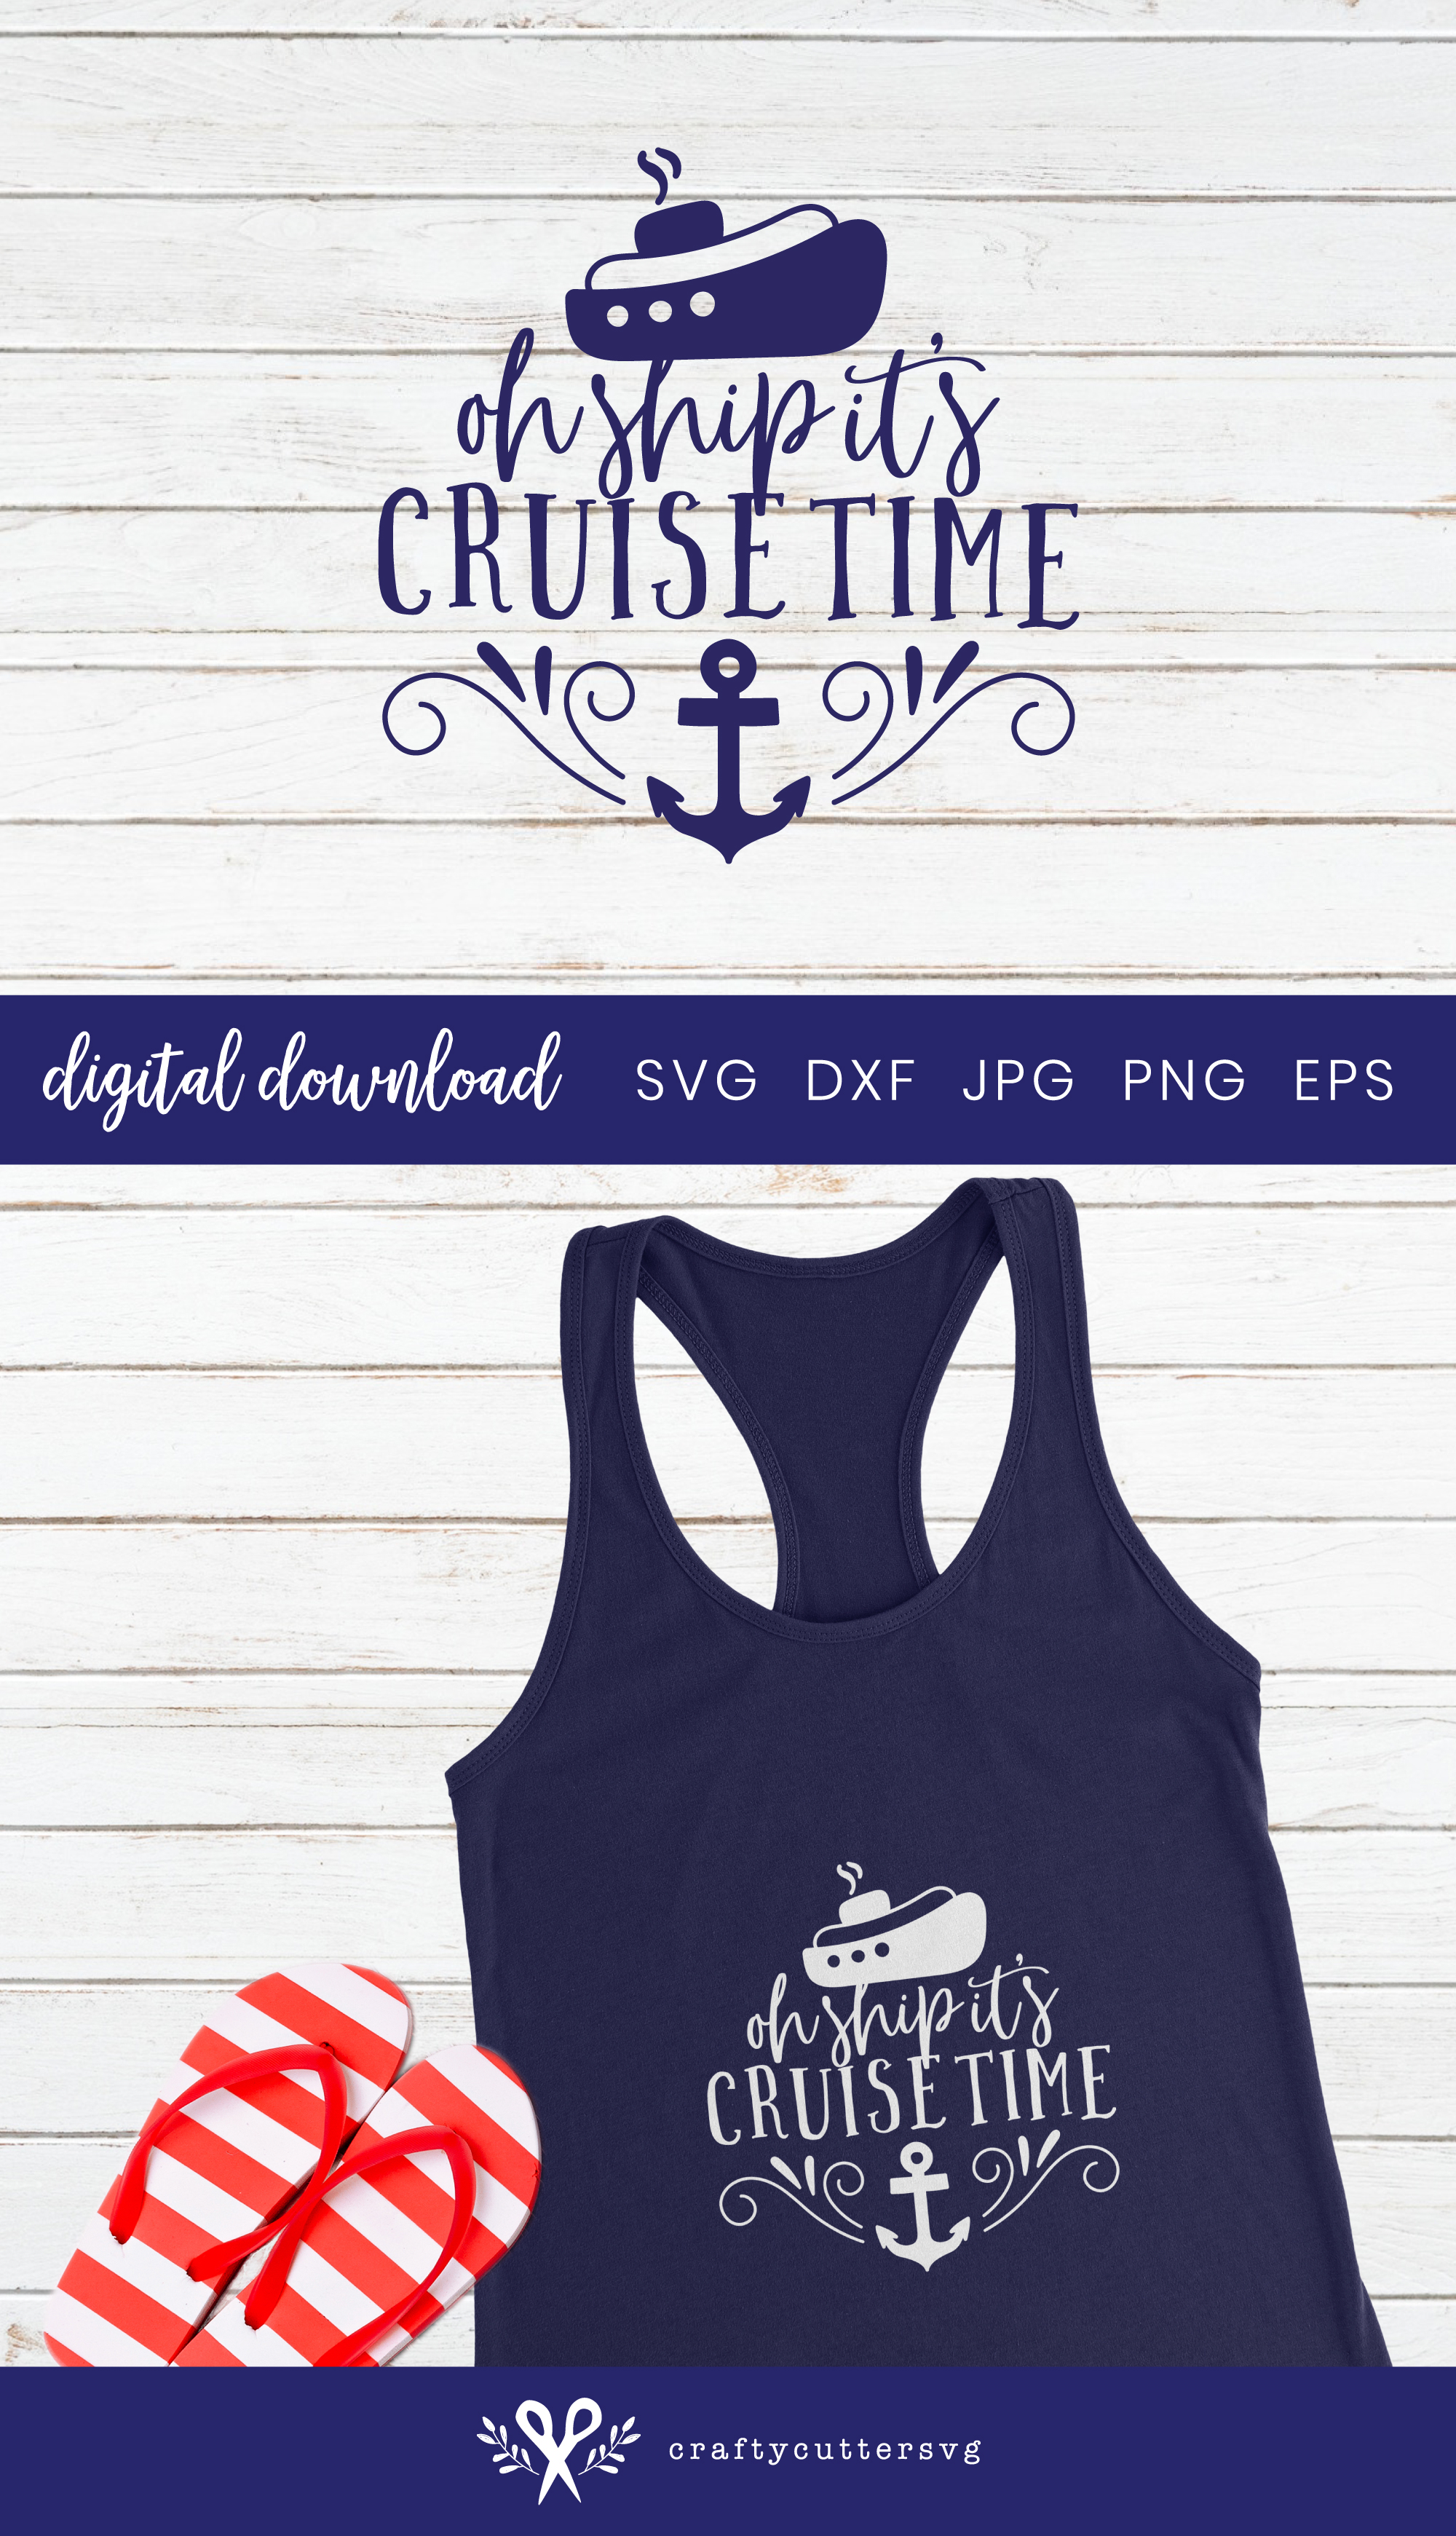 Oh ship it's cruise time Svg Cut File Ship Anchor Clipart example image 3